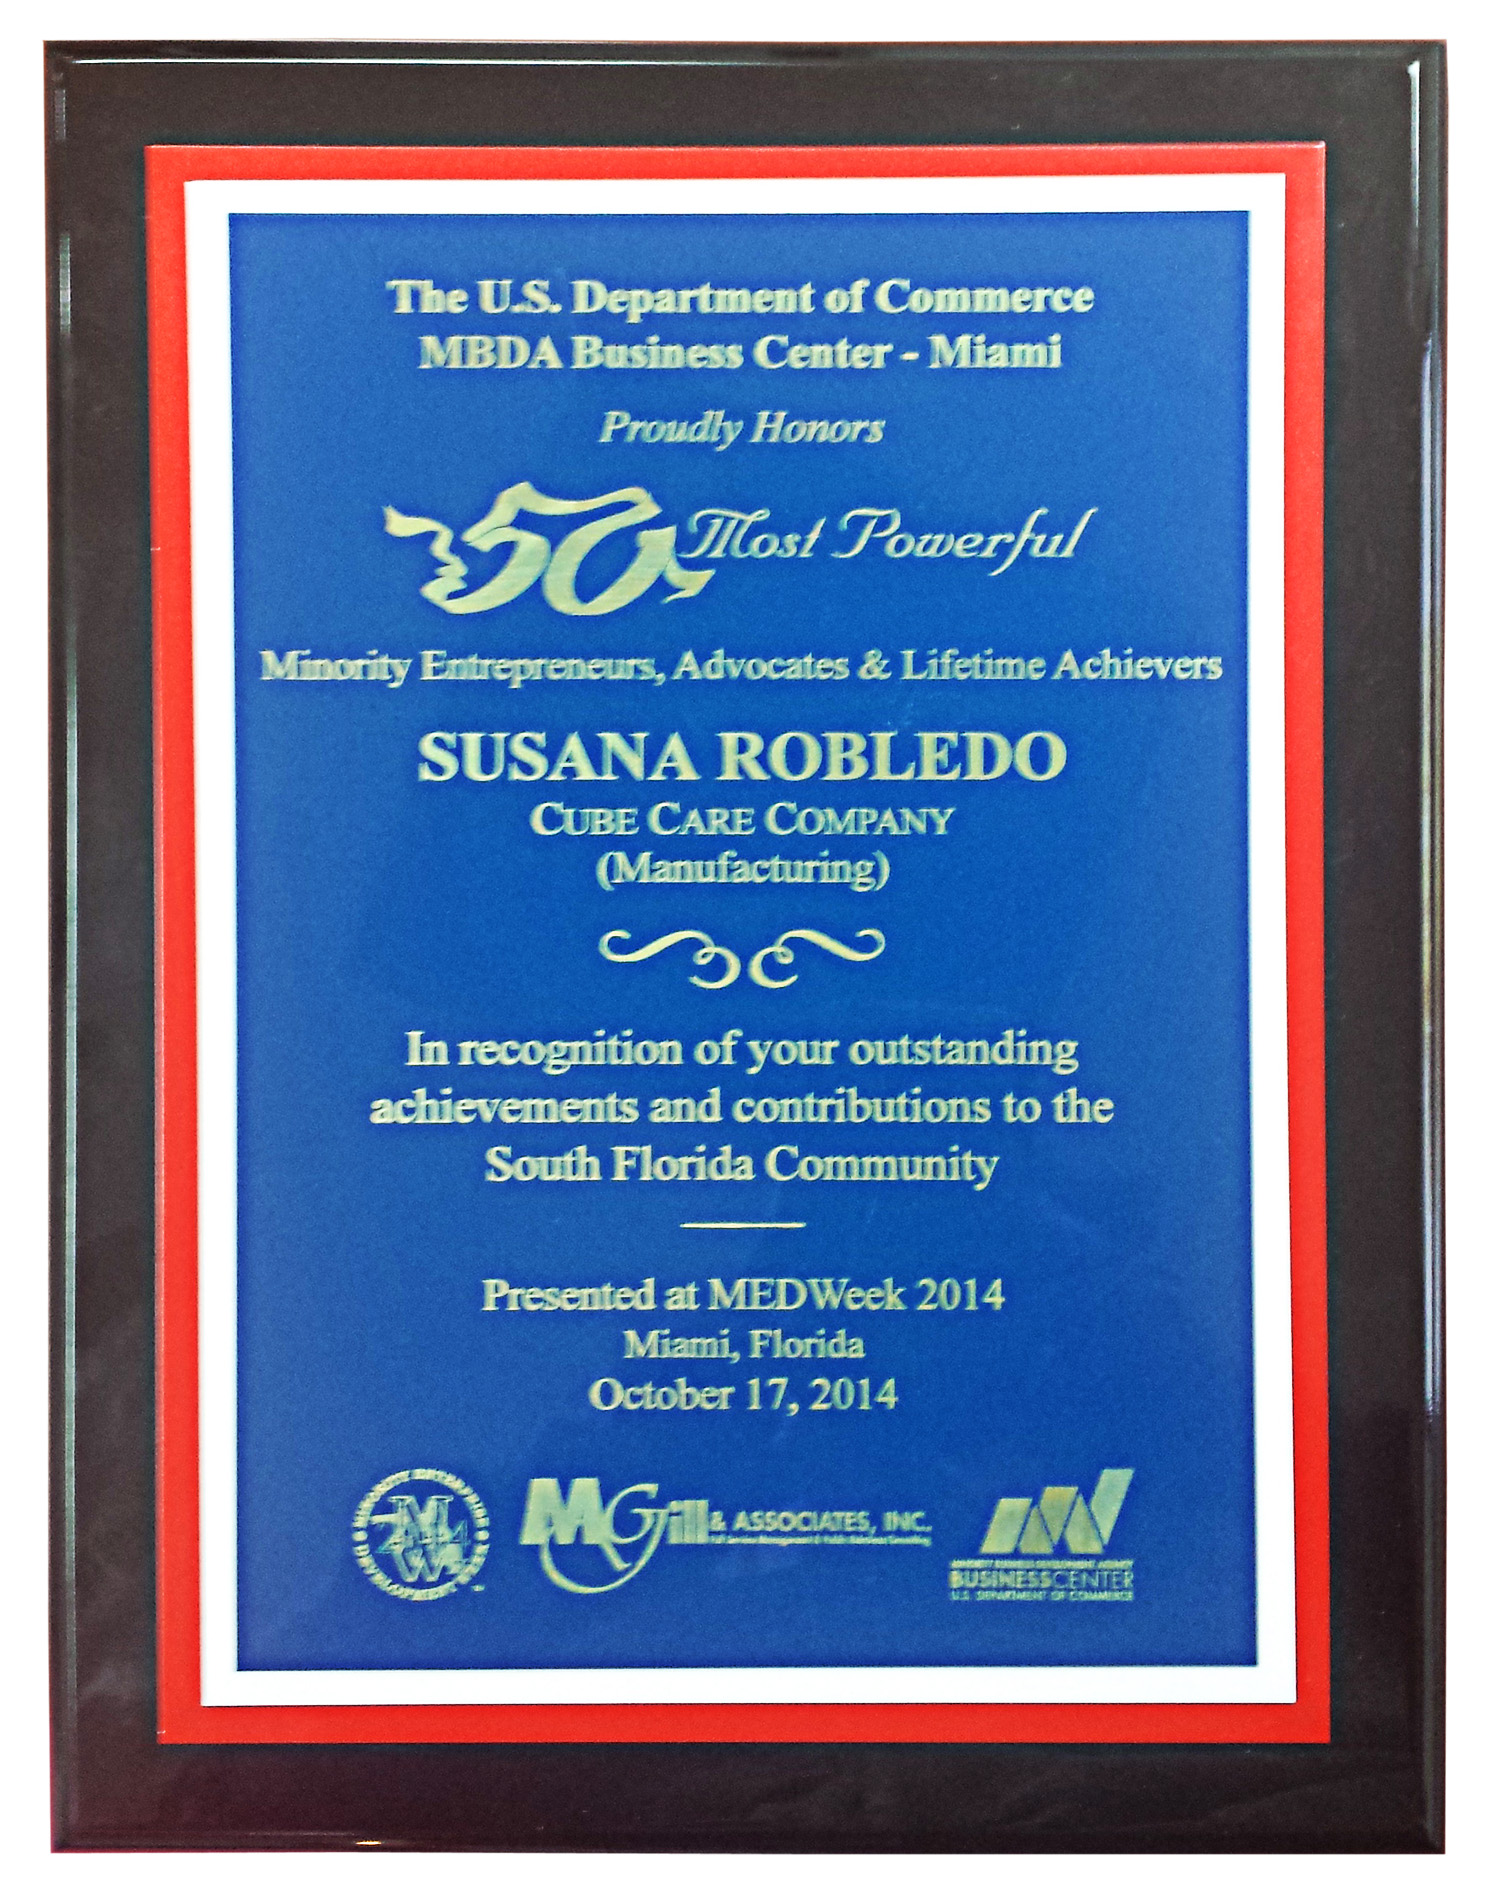 50 Most Powerful Minority Entrepreneurs, Advocates and Lifetime Achievers Award issued by US DEPARTMENT OF COMMERCE